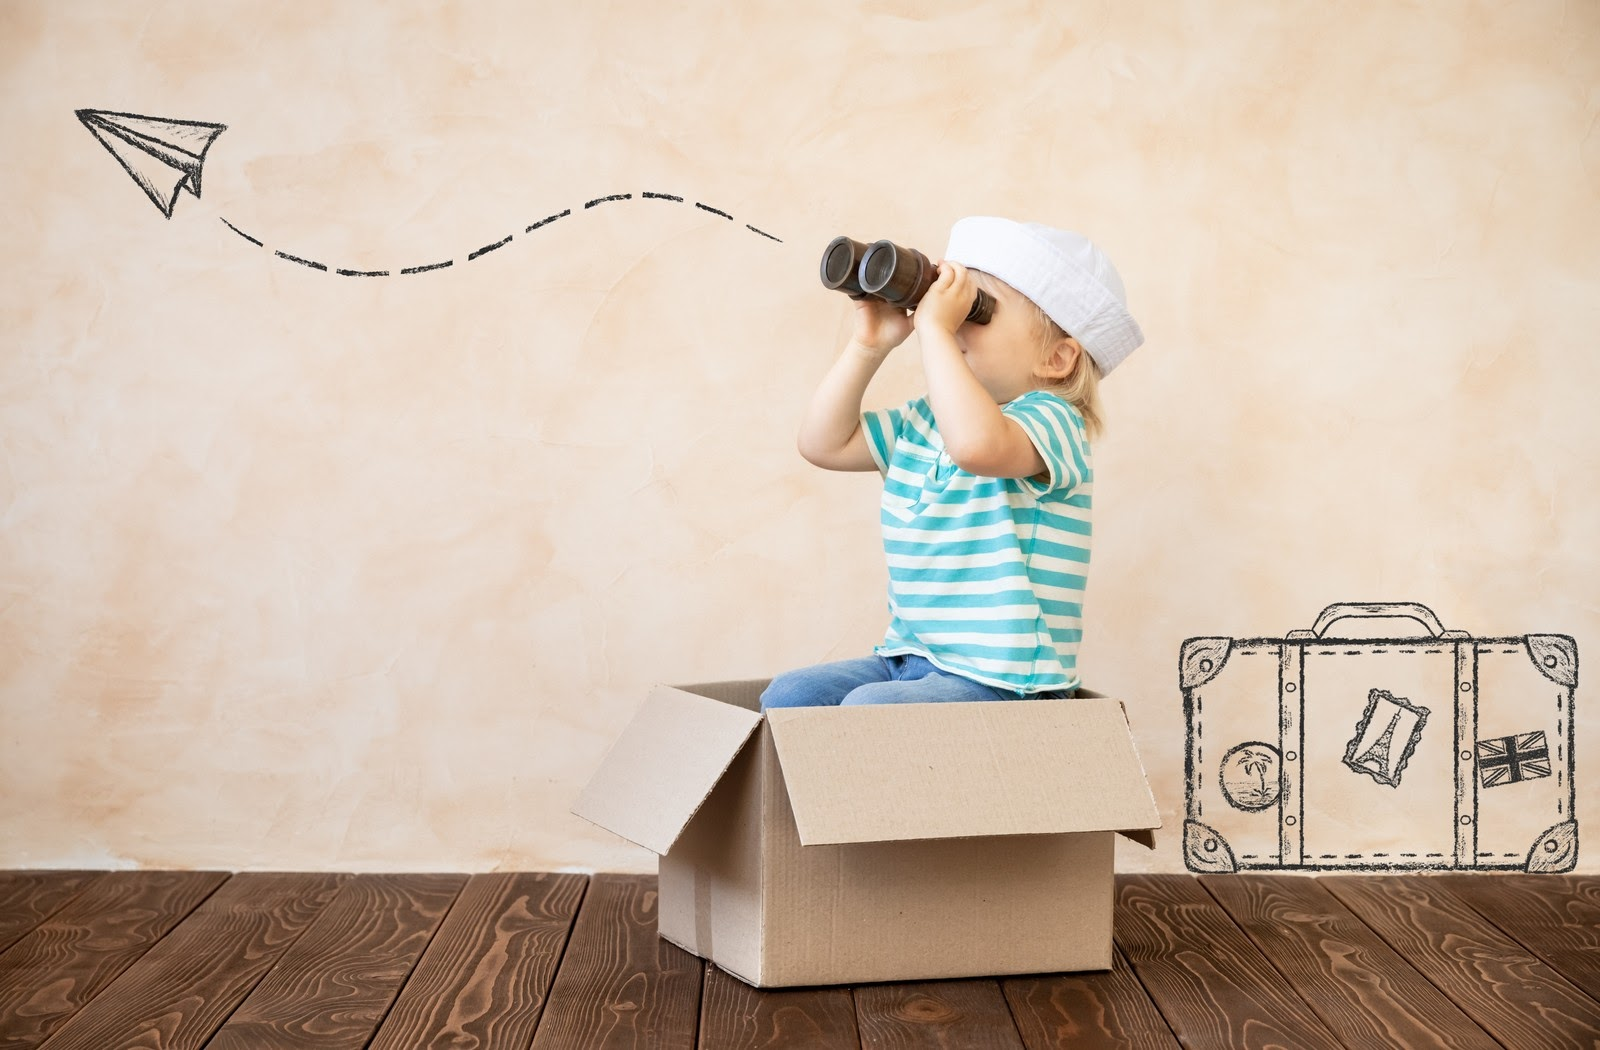 young boy dressed as a sailor holding binoculars while sitting in a cardboard box imagining a paper plane flying away